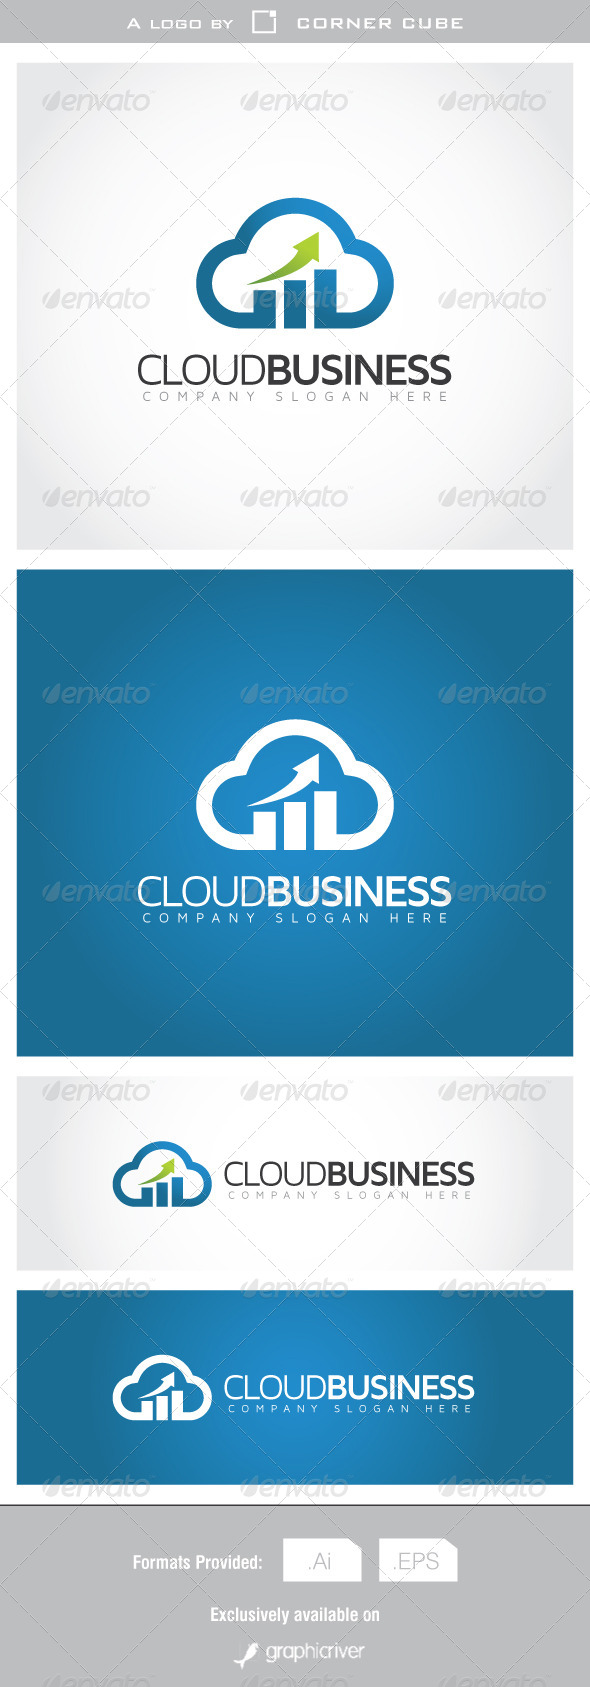 Cloud Business Logo - Logo Templates